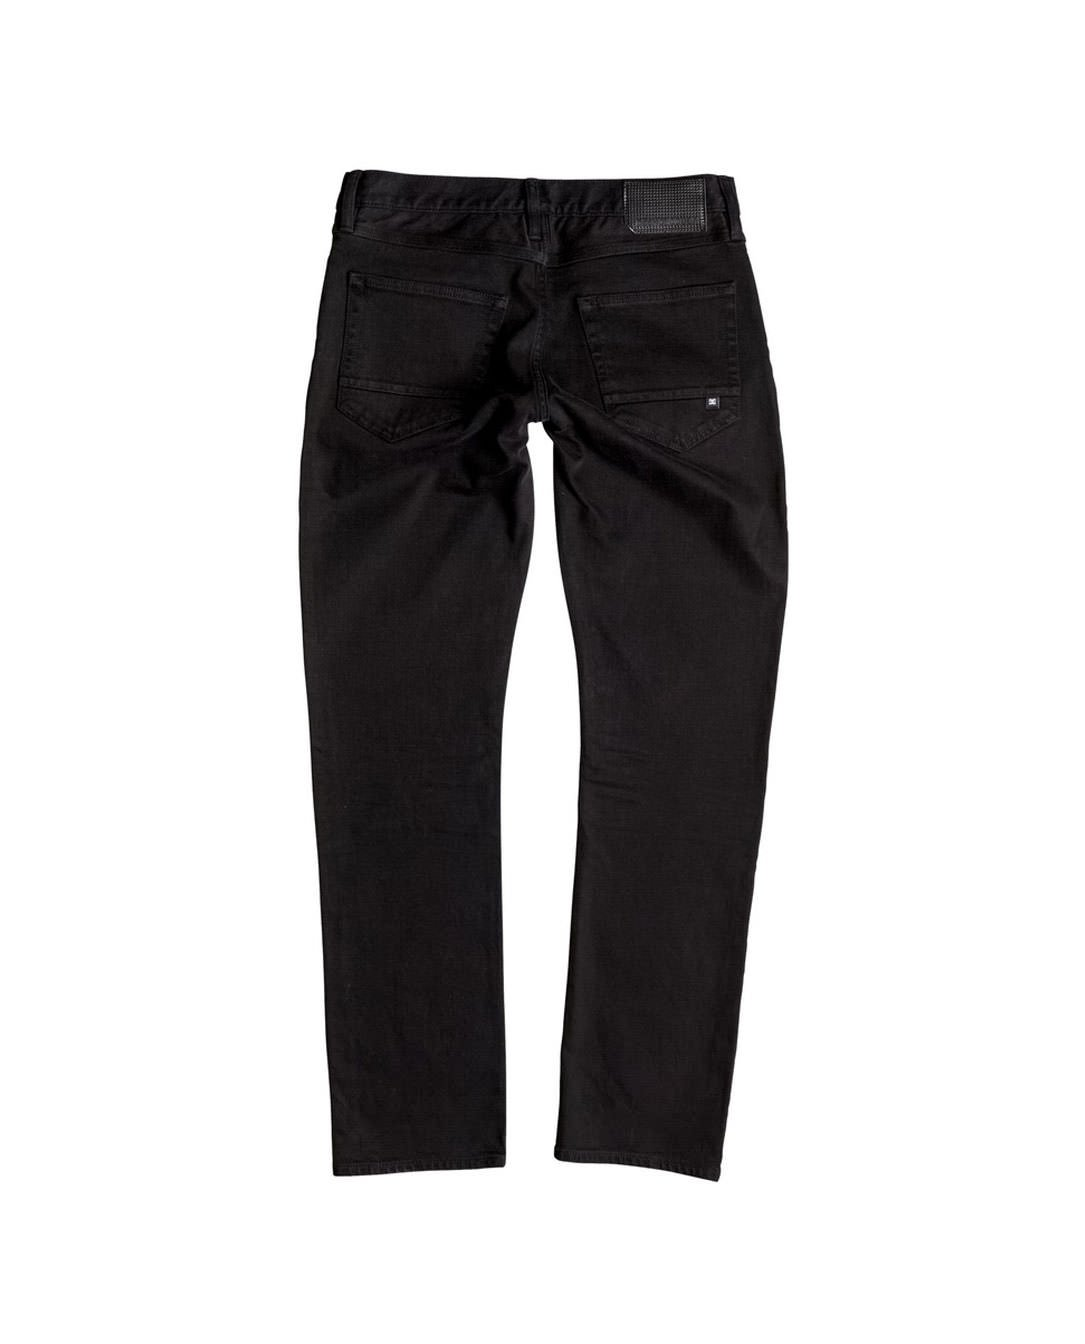 DC SHOES JEANS STRAIGHT - LM BOARD STORE